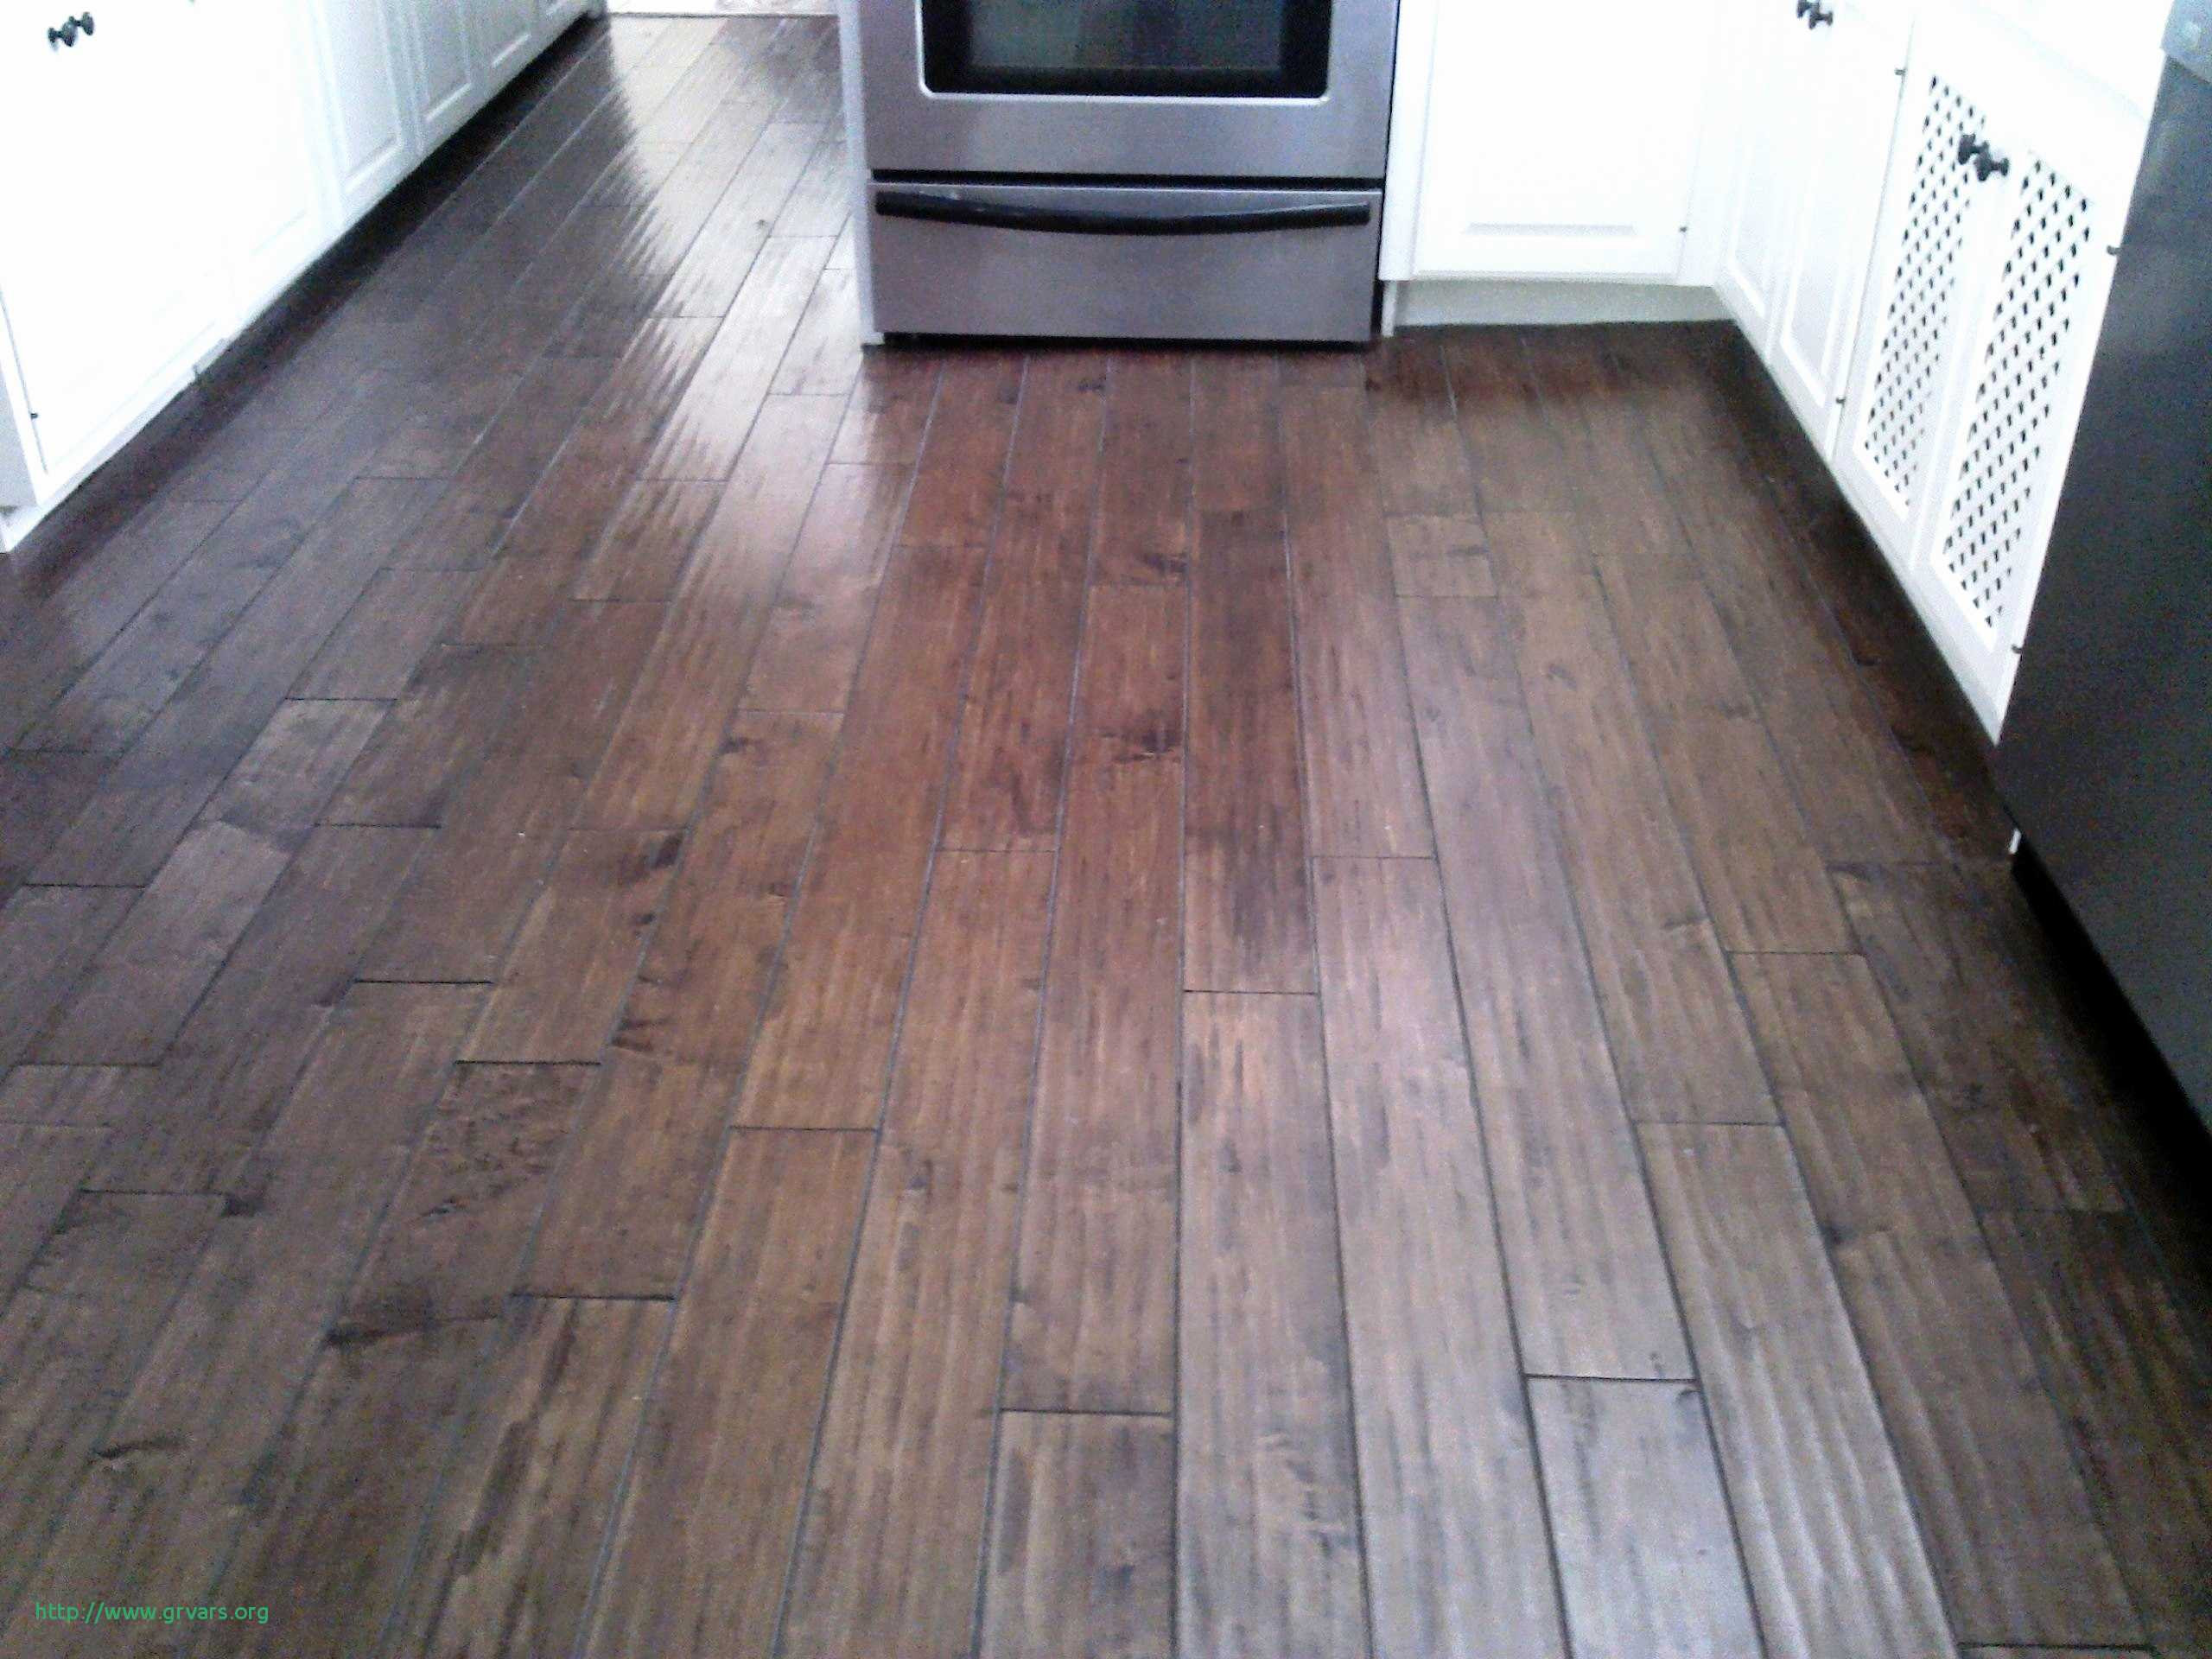 hardwood flooring salem oregon of 22 luxe hardwood floor refinishing winston salem nc ideas blog pertaining to discount hardwood flooring beautiful ceramic tile that looks like hardwood floor podemosleganes